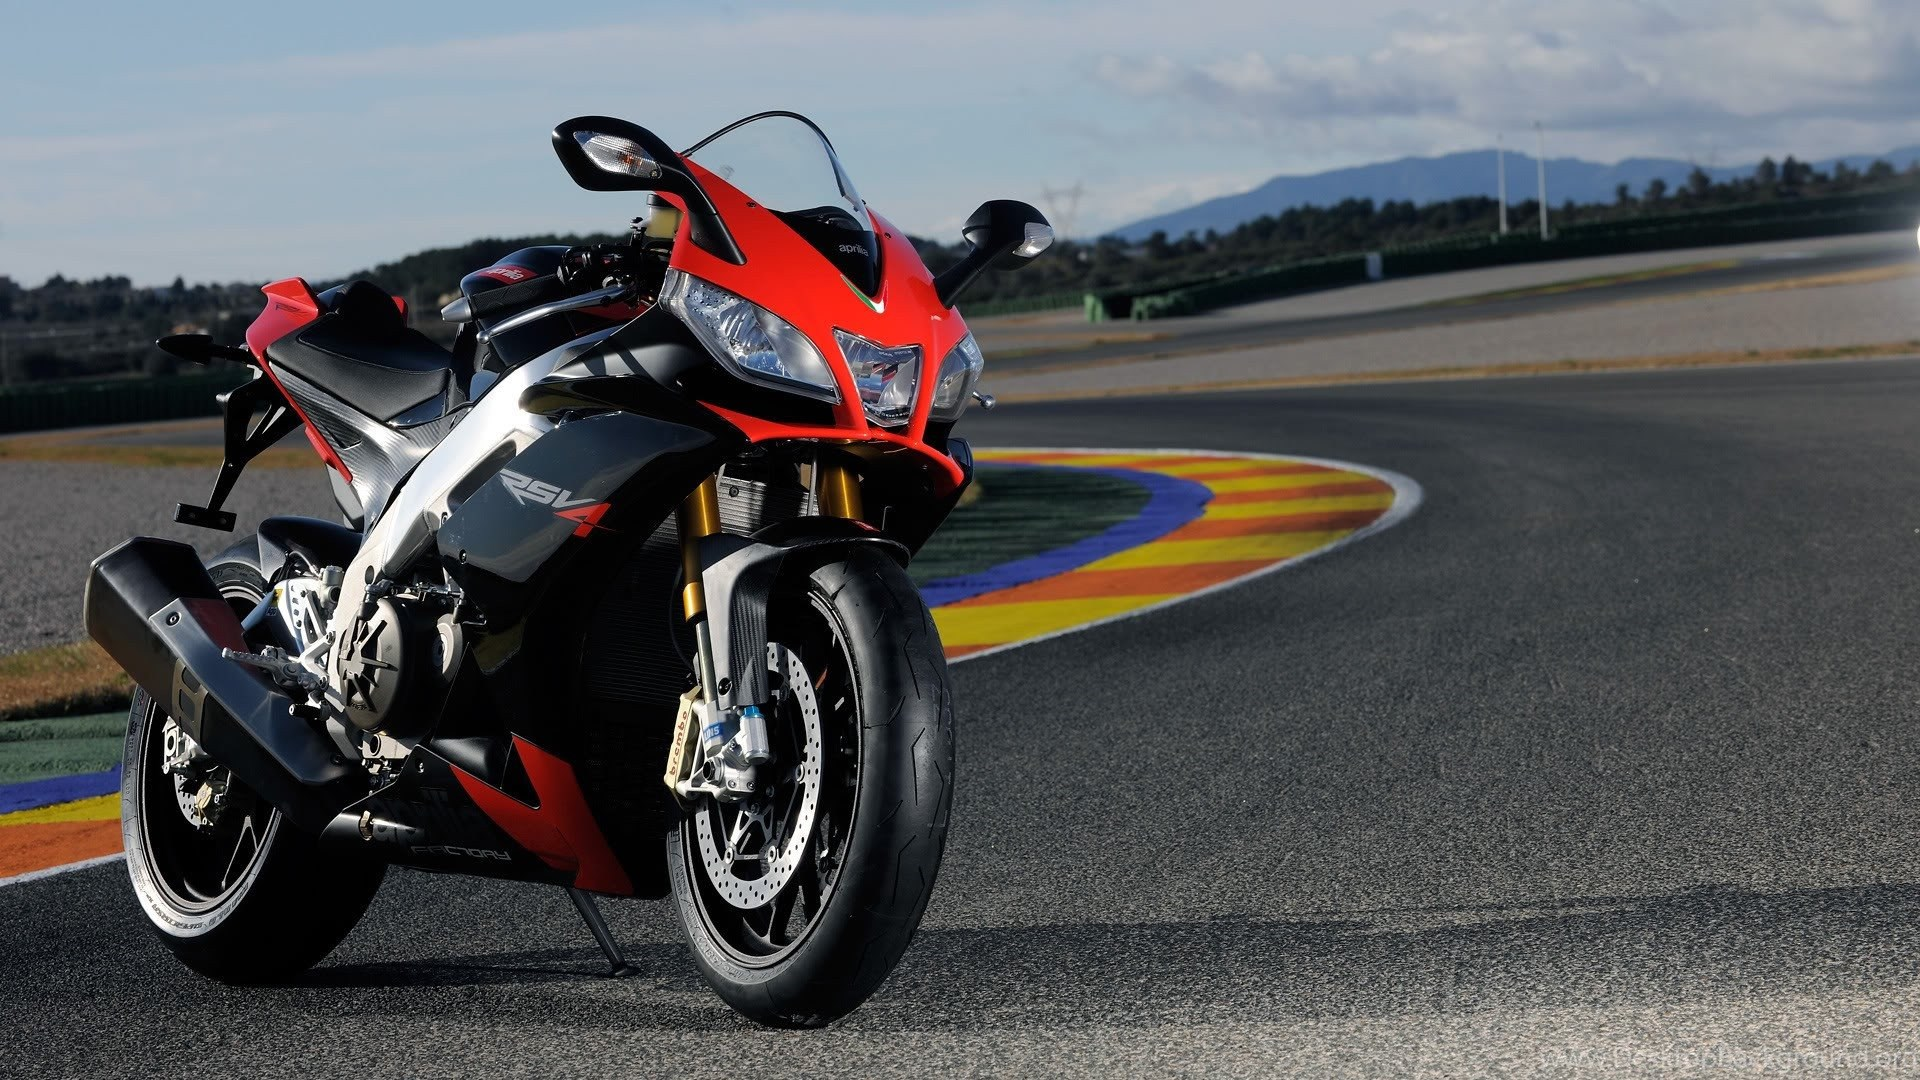 Aprilia RSV4 Nice Quality HD Bike Wallpapers Best Picture1